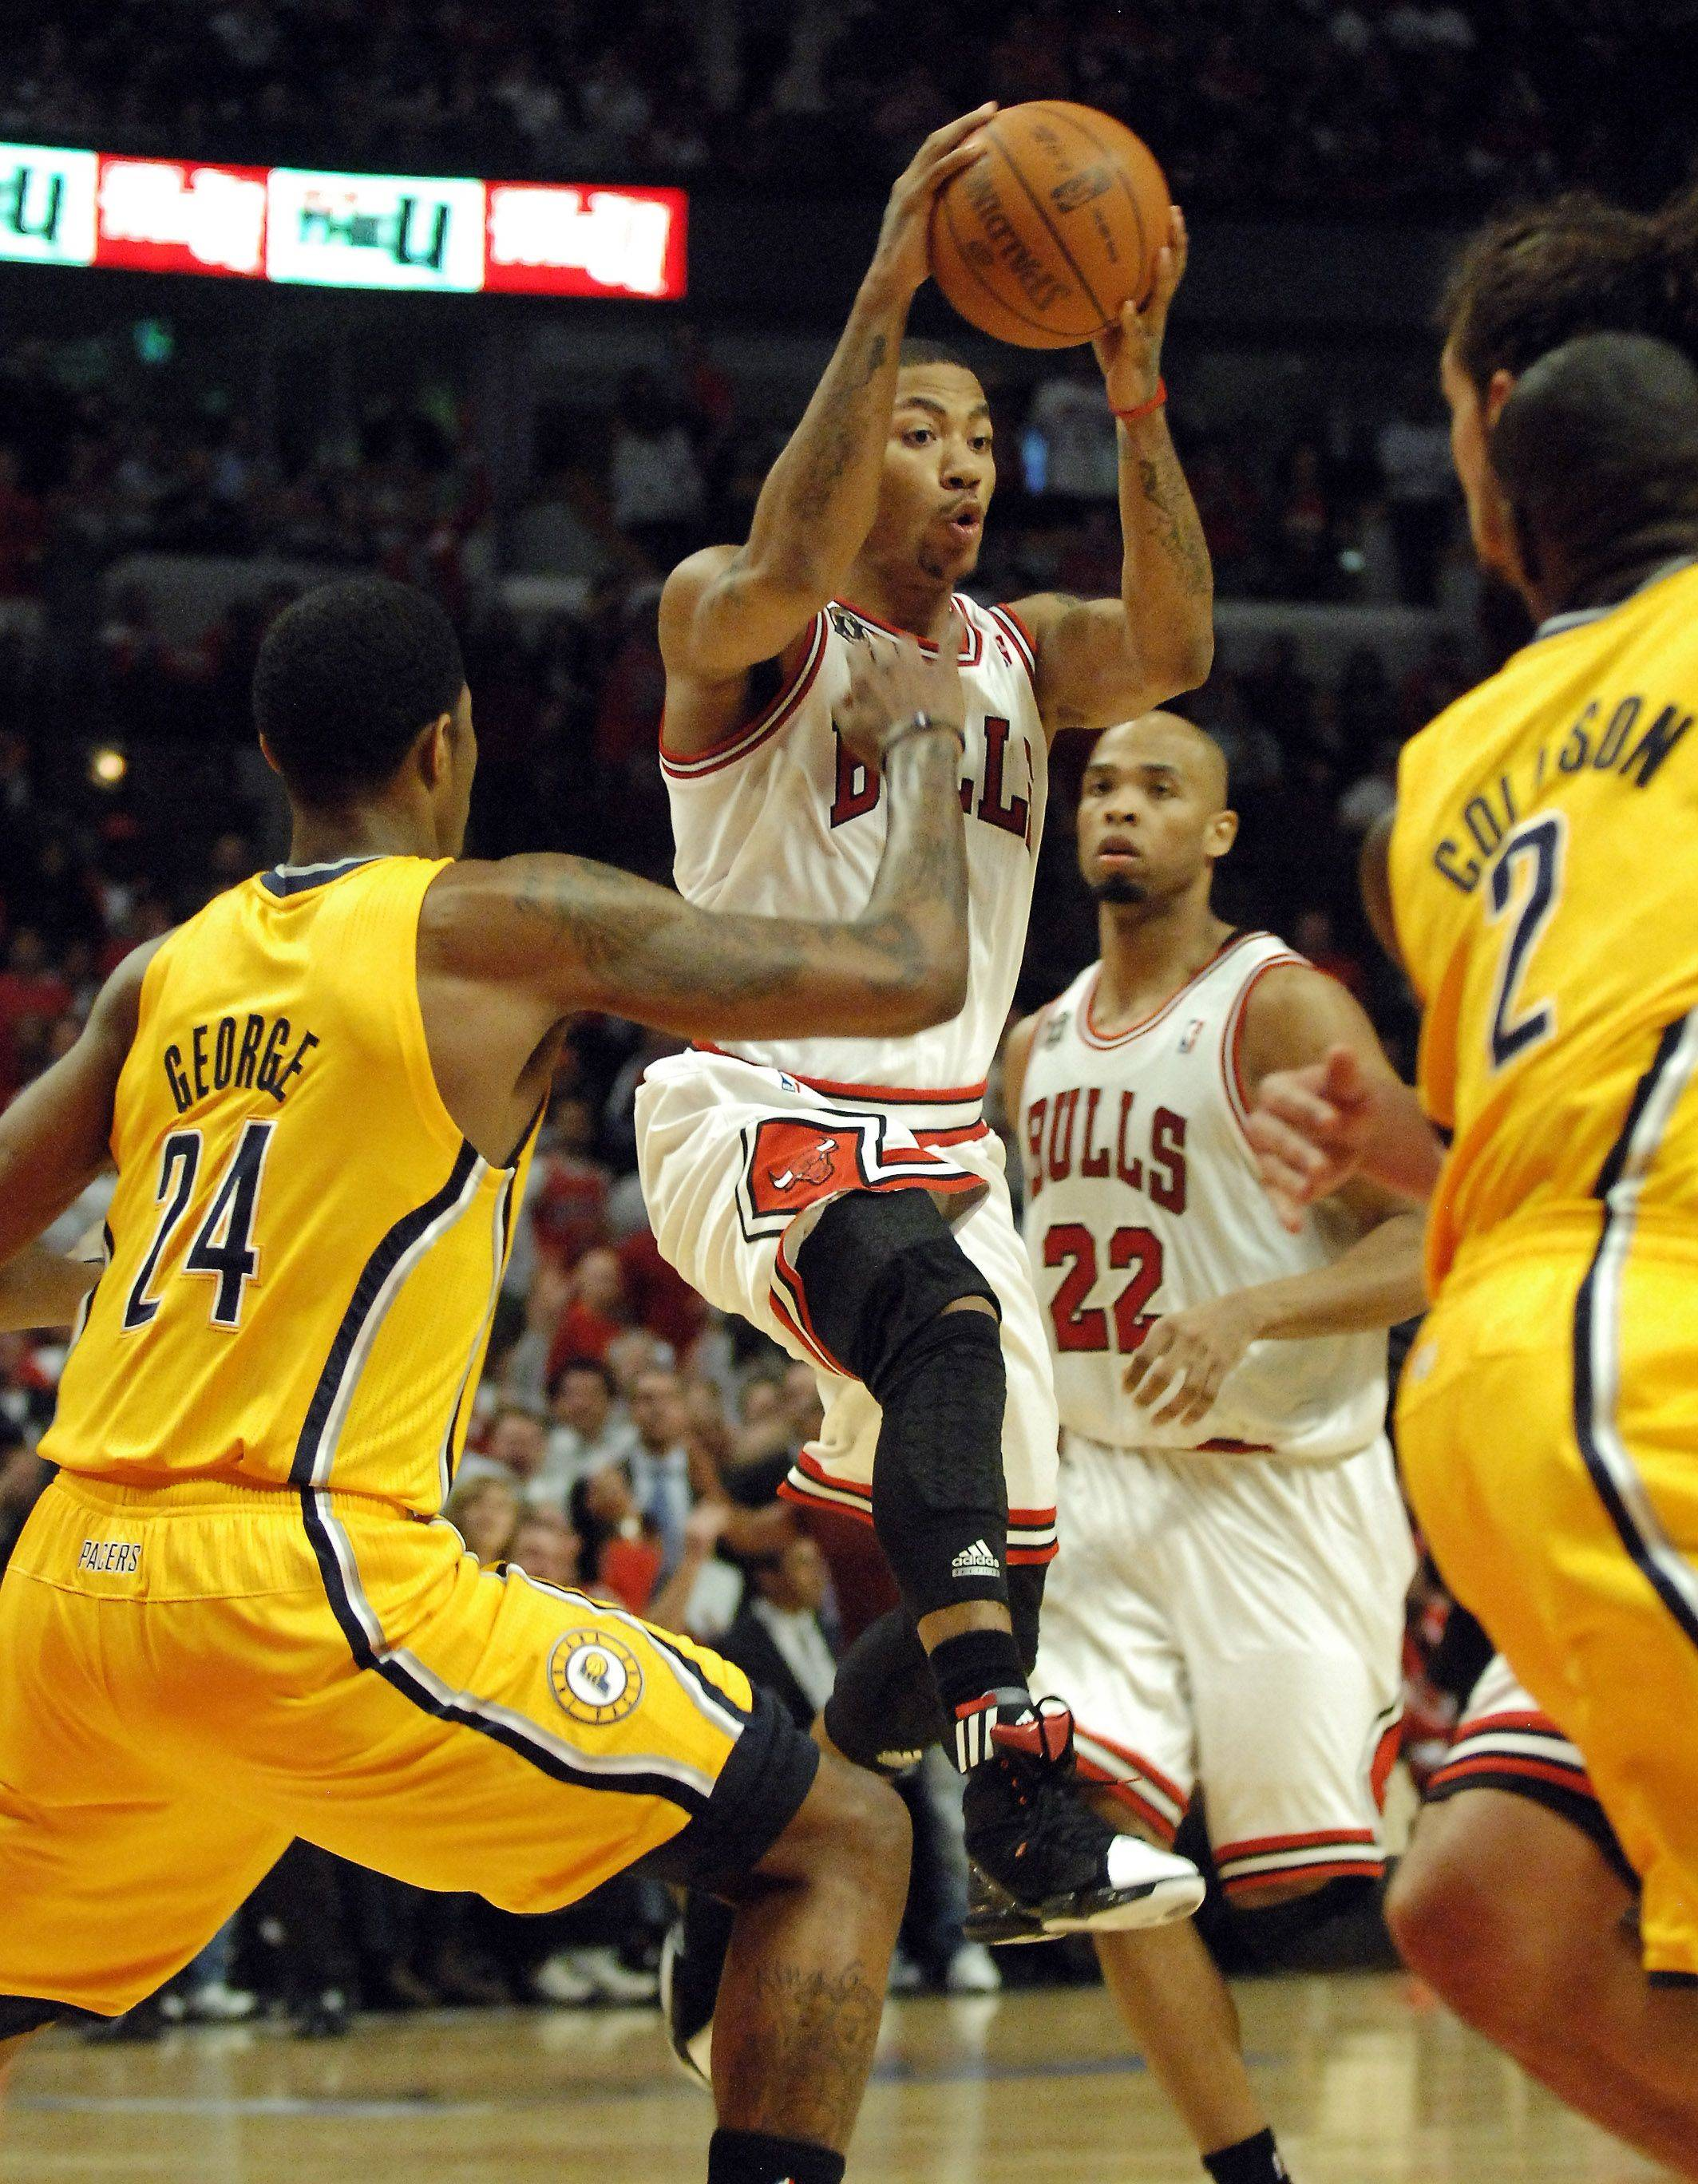 Bulls guard Derrick Rose looks to pass Tuesday.